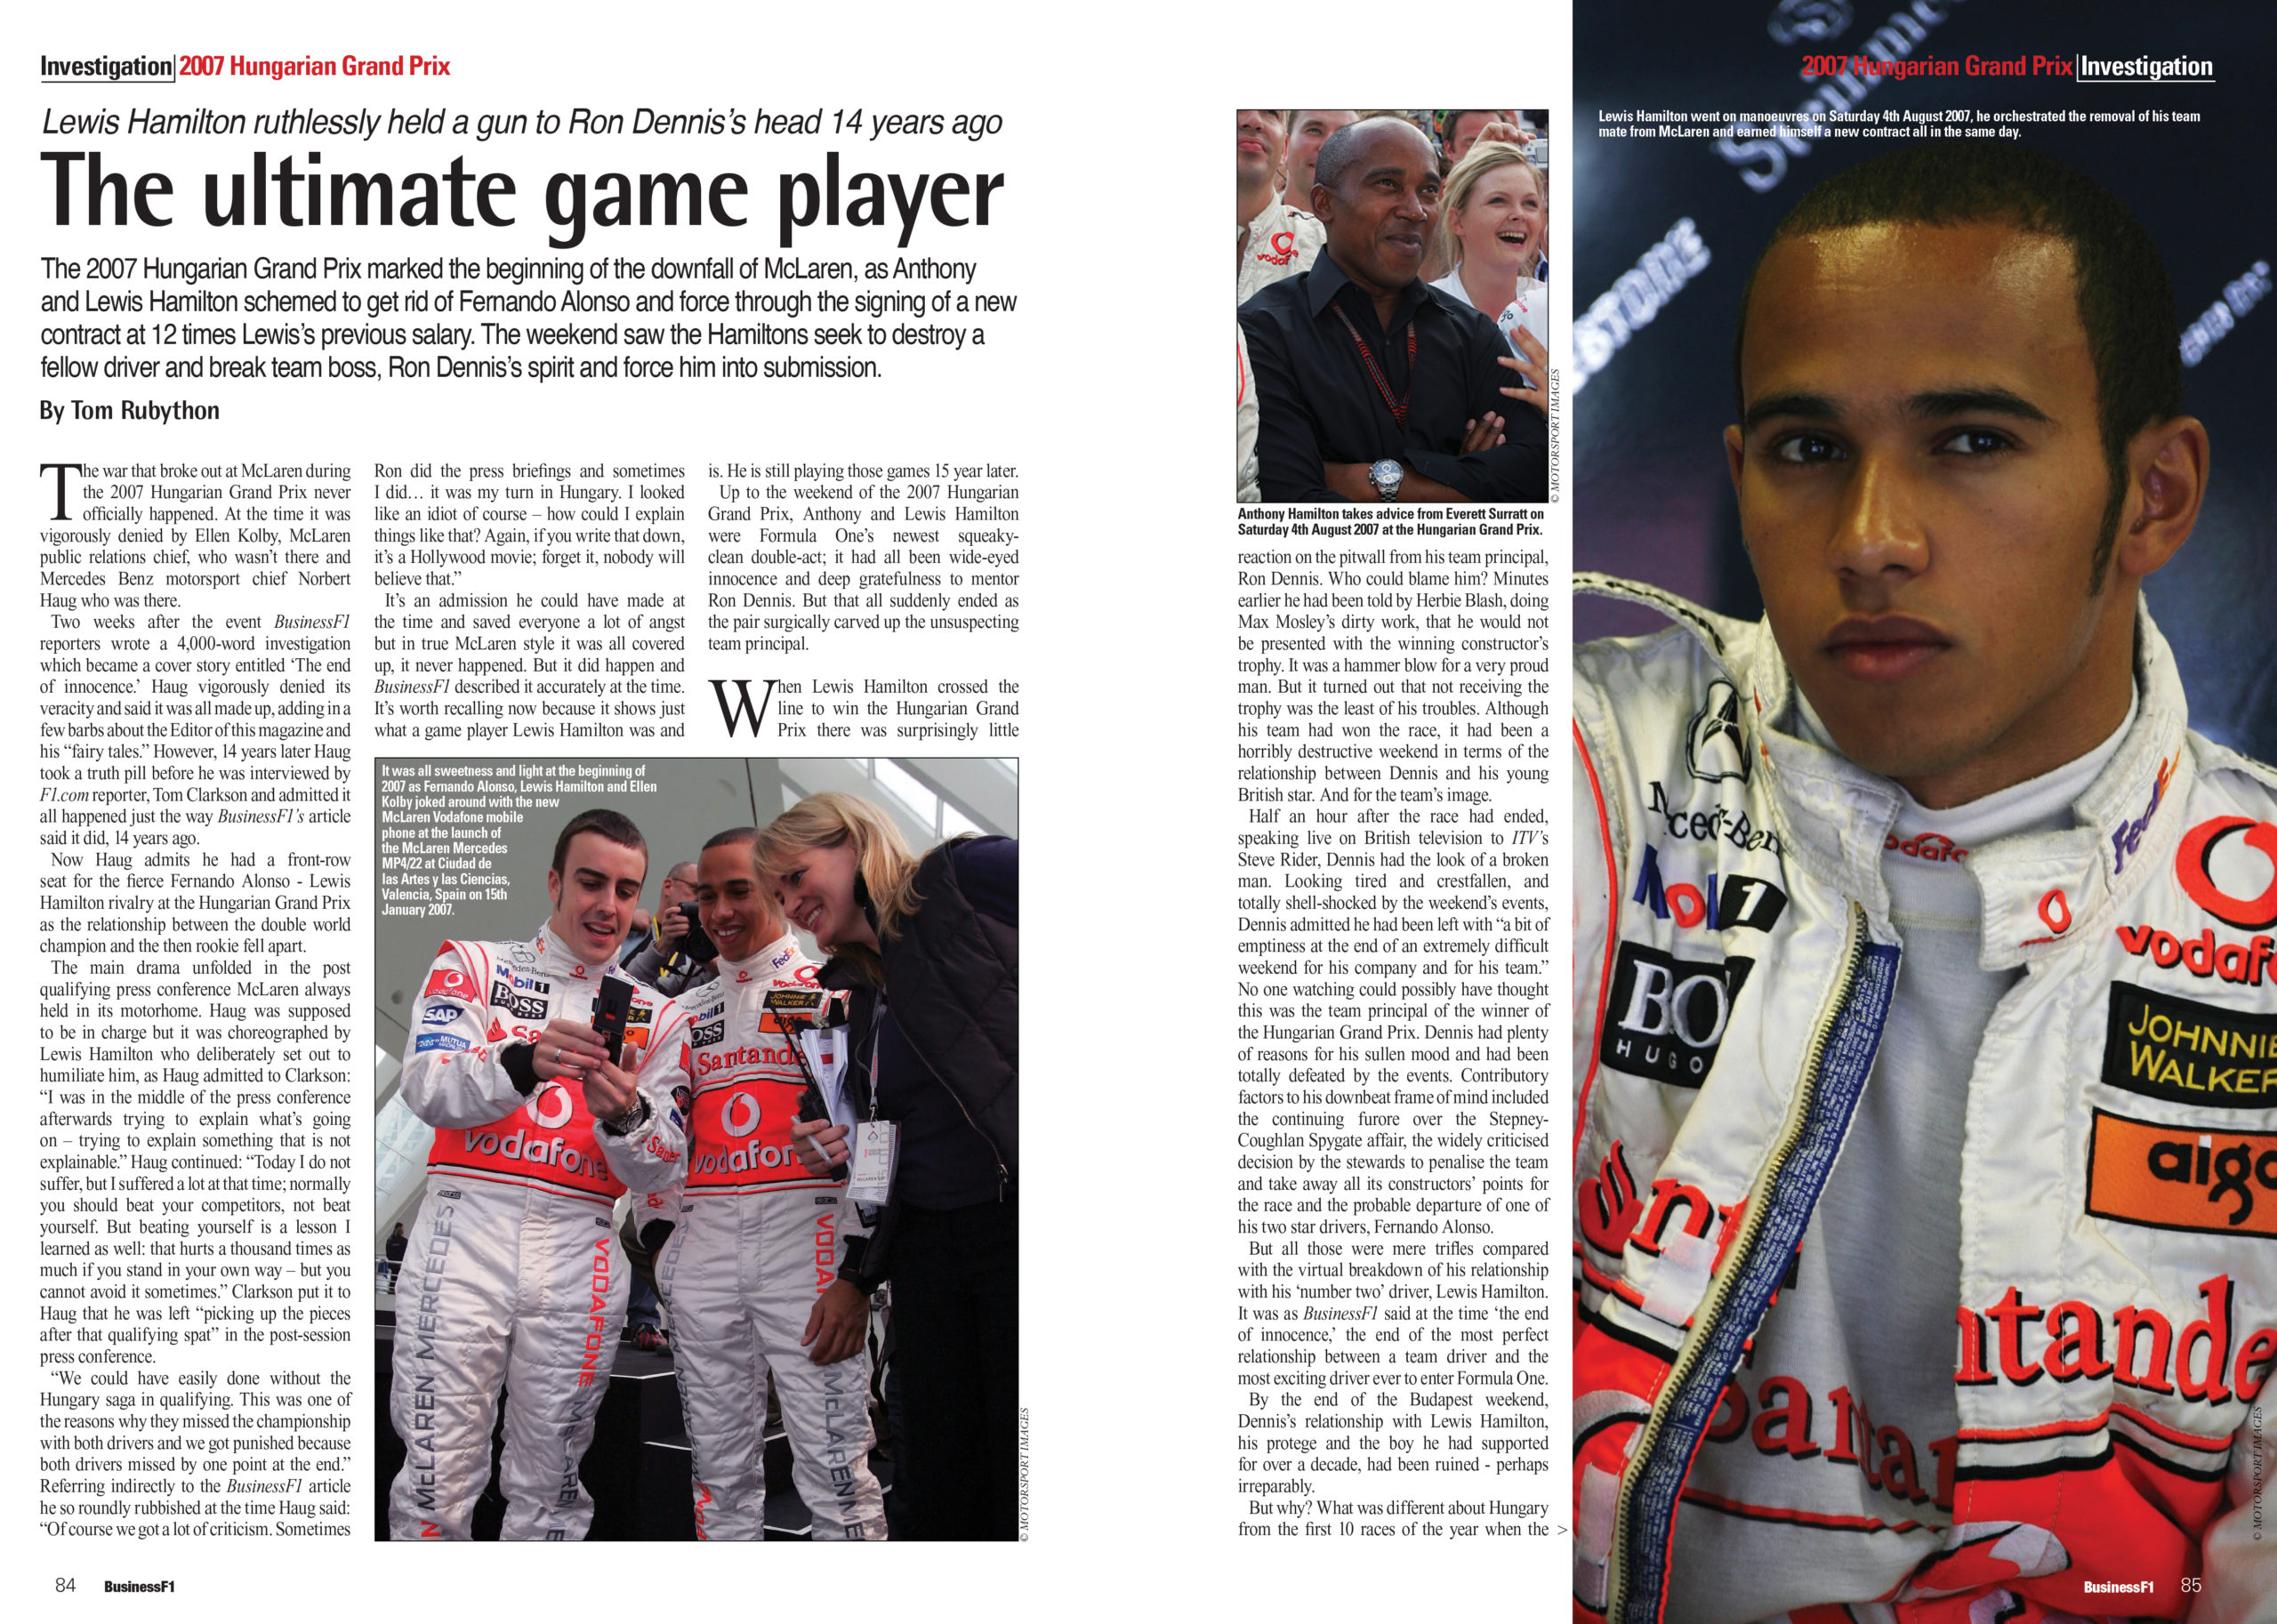 84_The ultimate game player